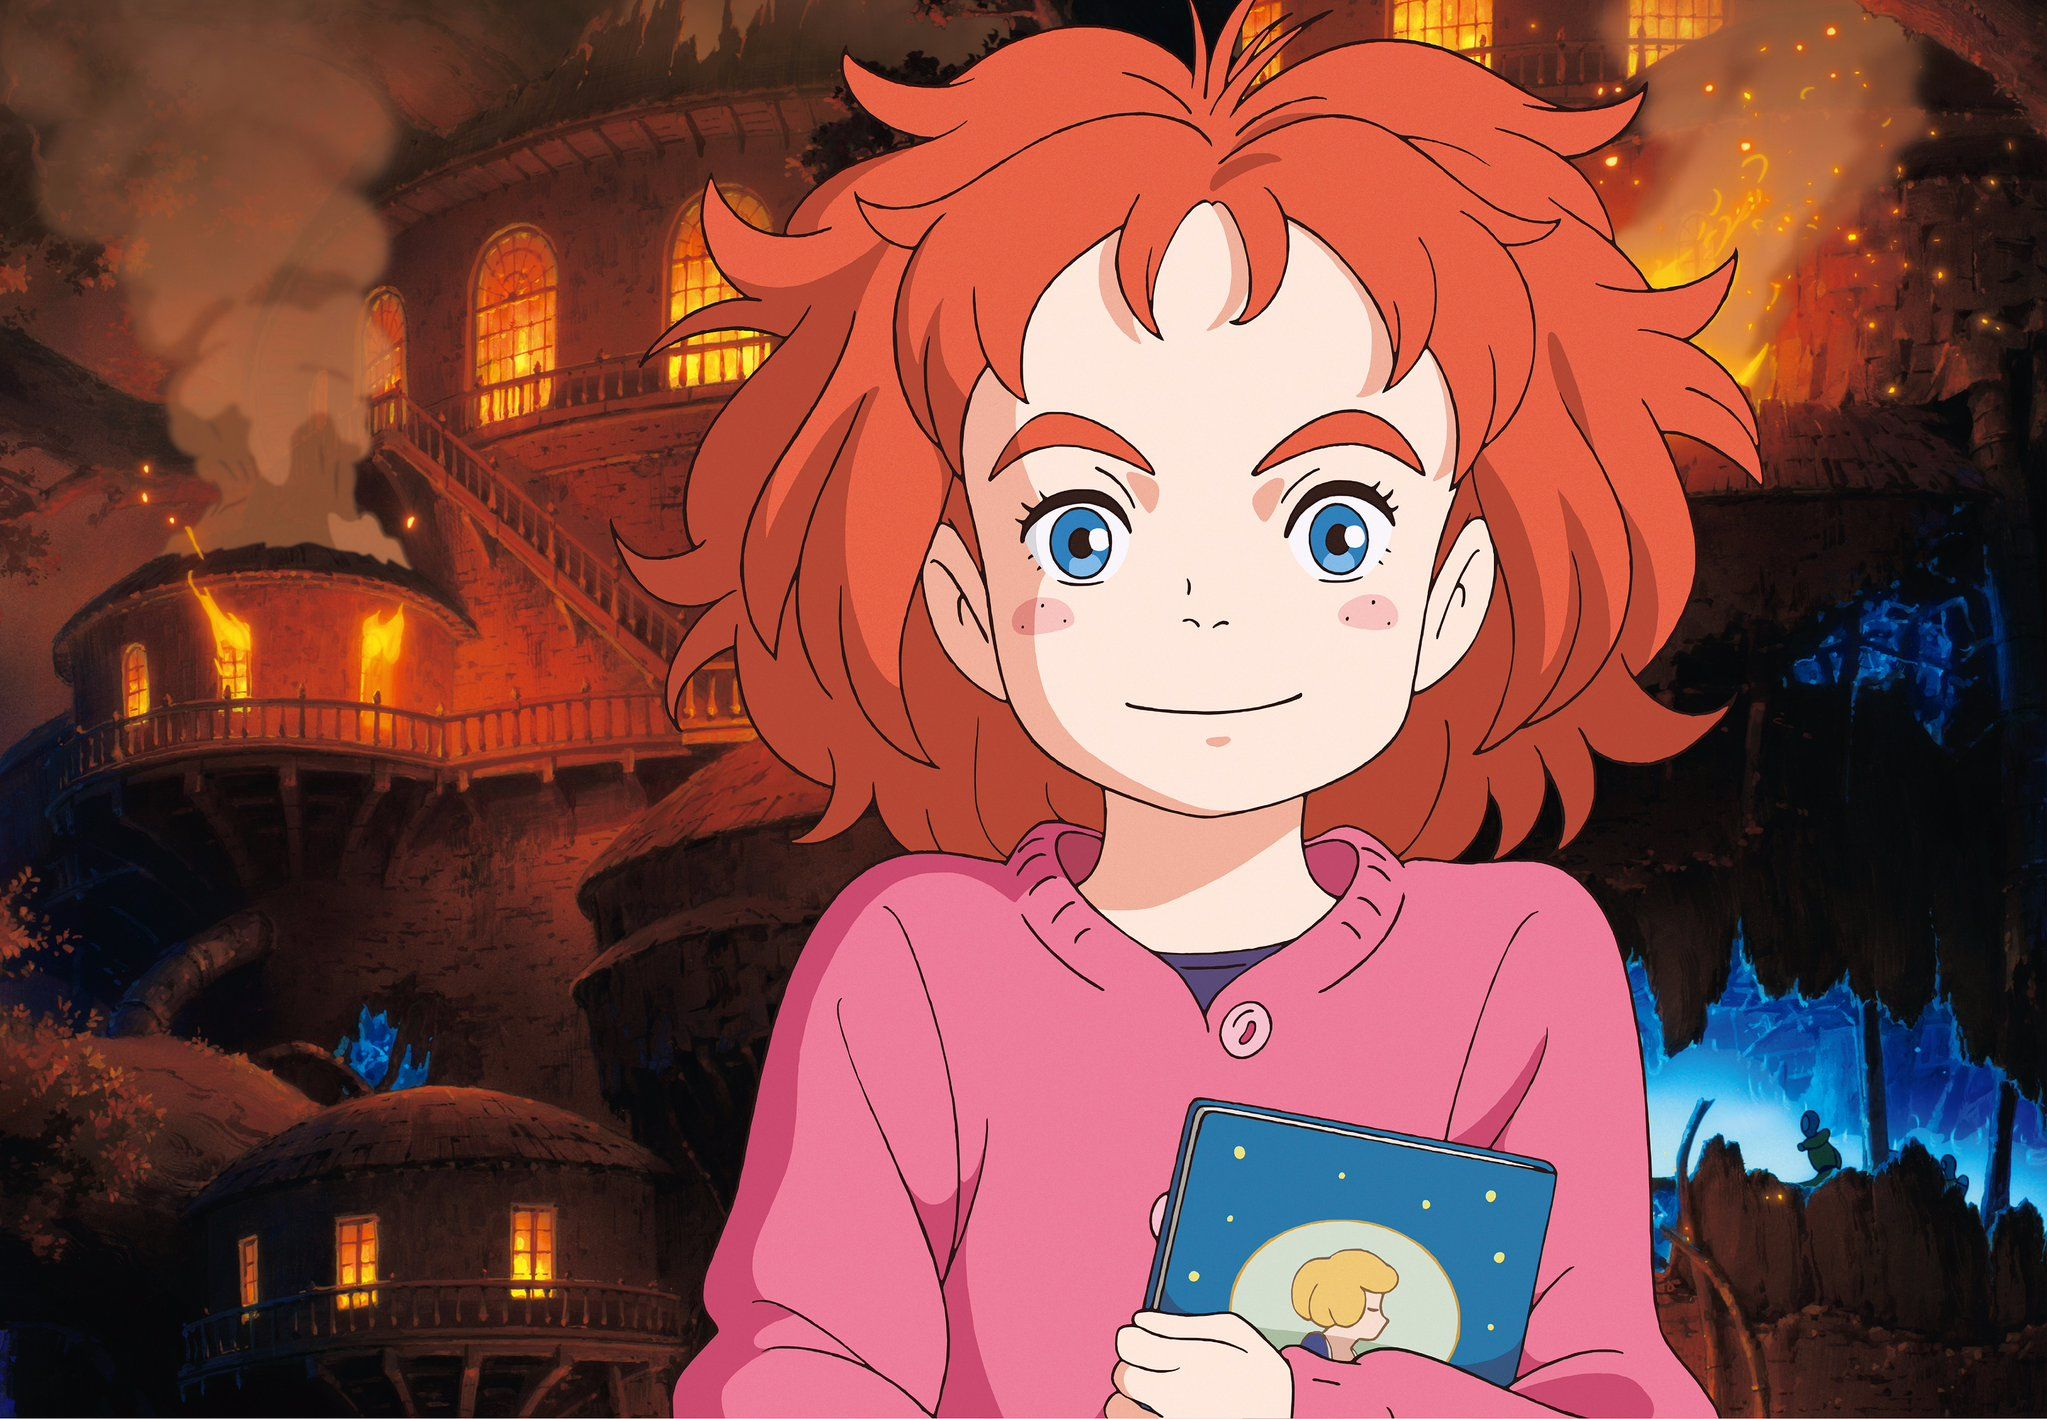 """Altitude Film Sales has Licensed """"Mary and the Witch's Flower"""" (Mary to Majo no Hana) - https://twitter.com/AltitudeSales/status/827102673061212160"""